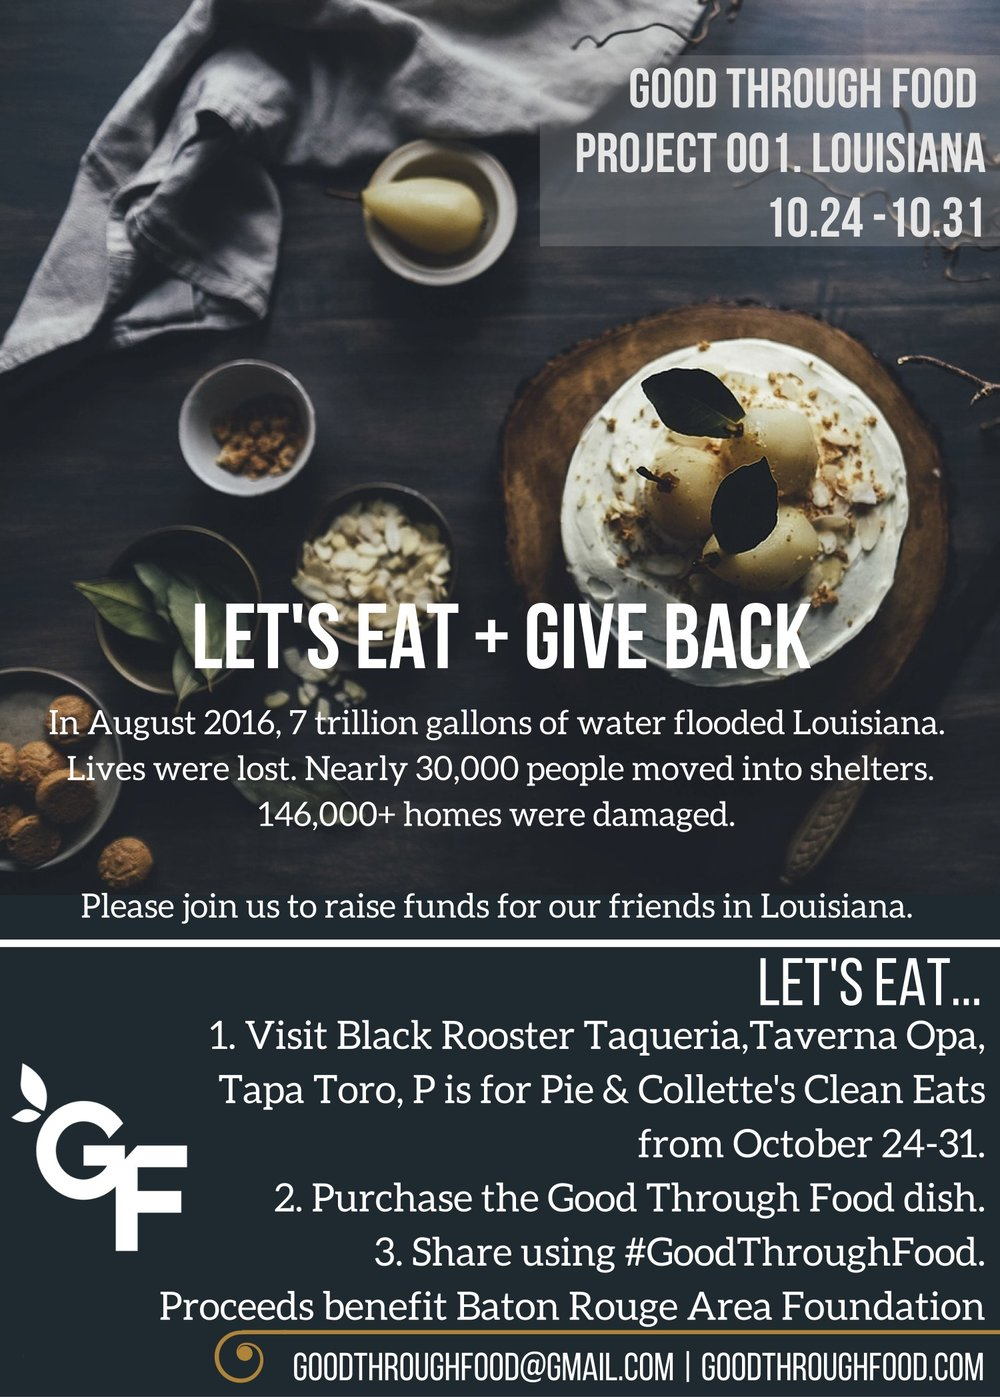 Raise Funds for Louisiana via Good Through Food